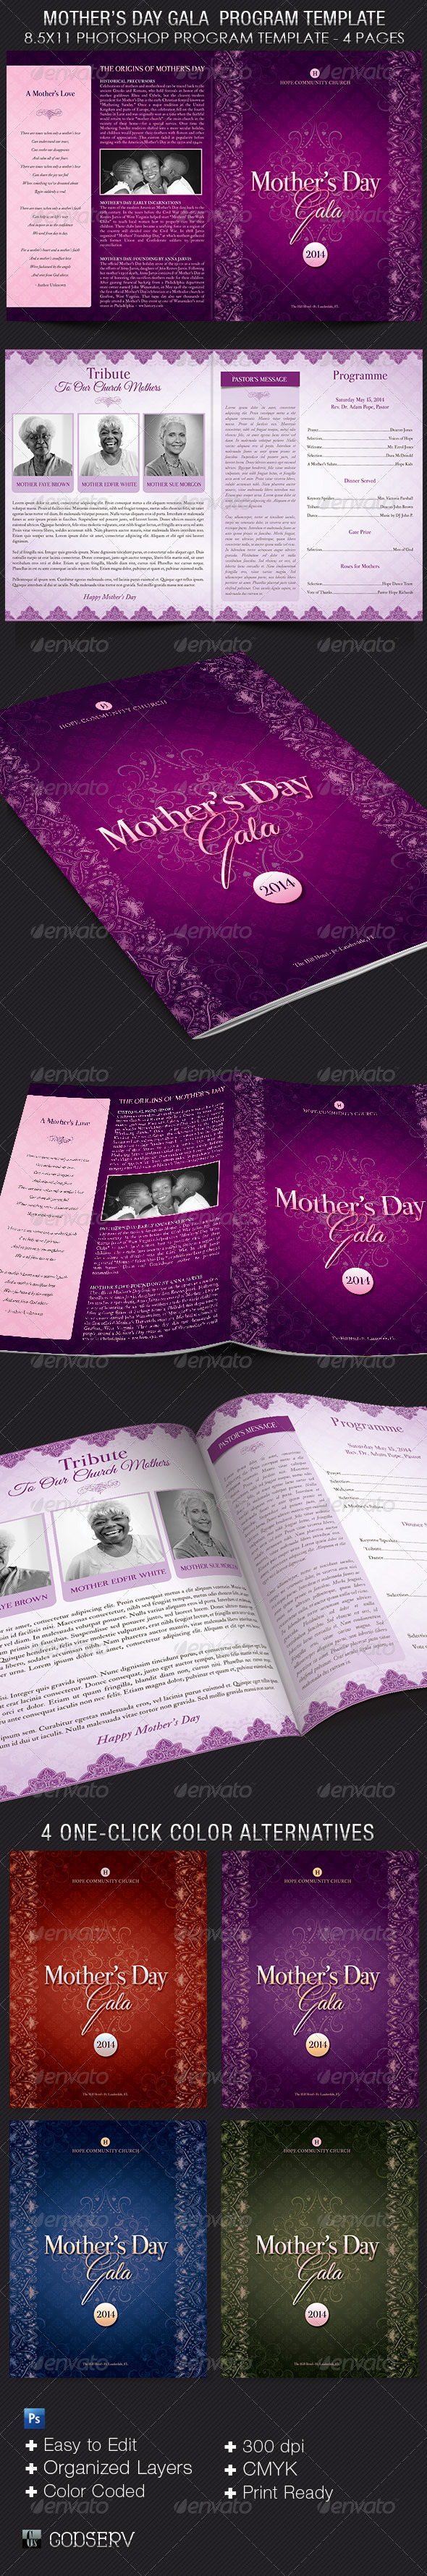 GraphicRiver Mother's Day Gala Program Template 7699495